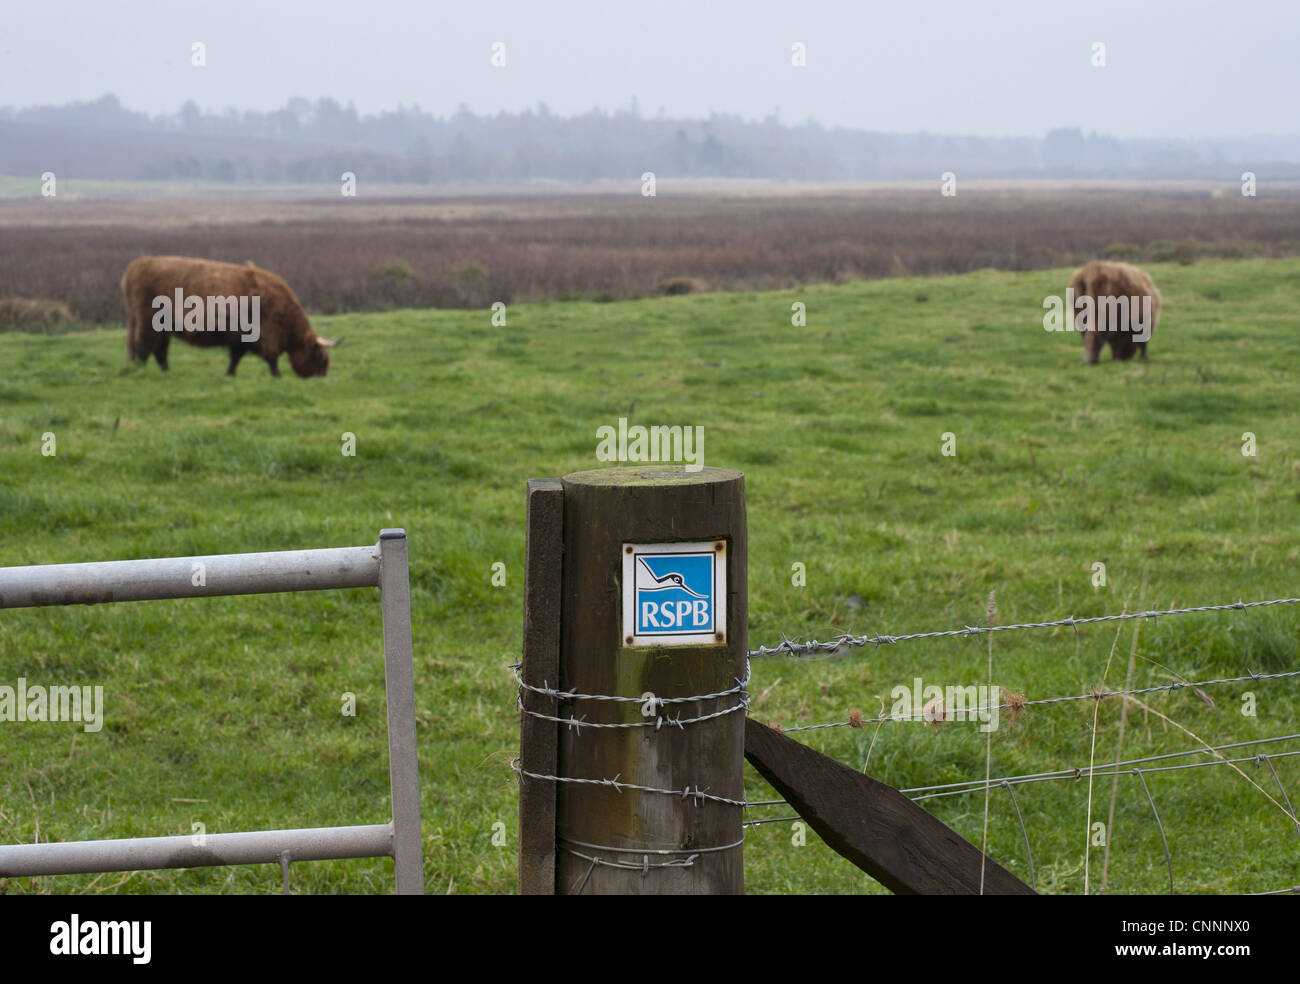 RSPB sign gatepost Highland Cattle grazing pasture background Loch Kinnordy RSPB Nature Reserve Kingoldrum Angus - Stock Image